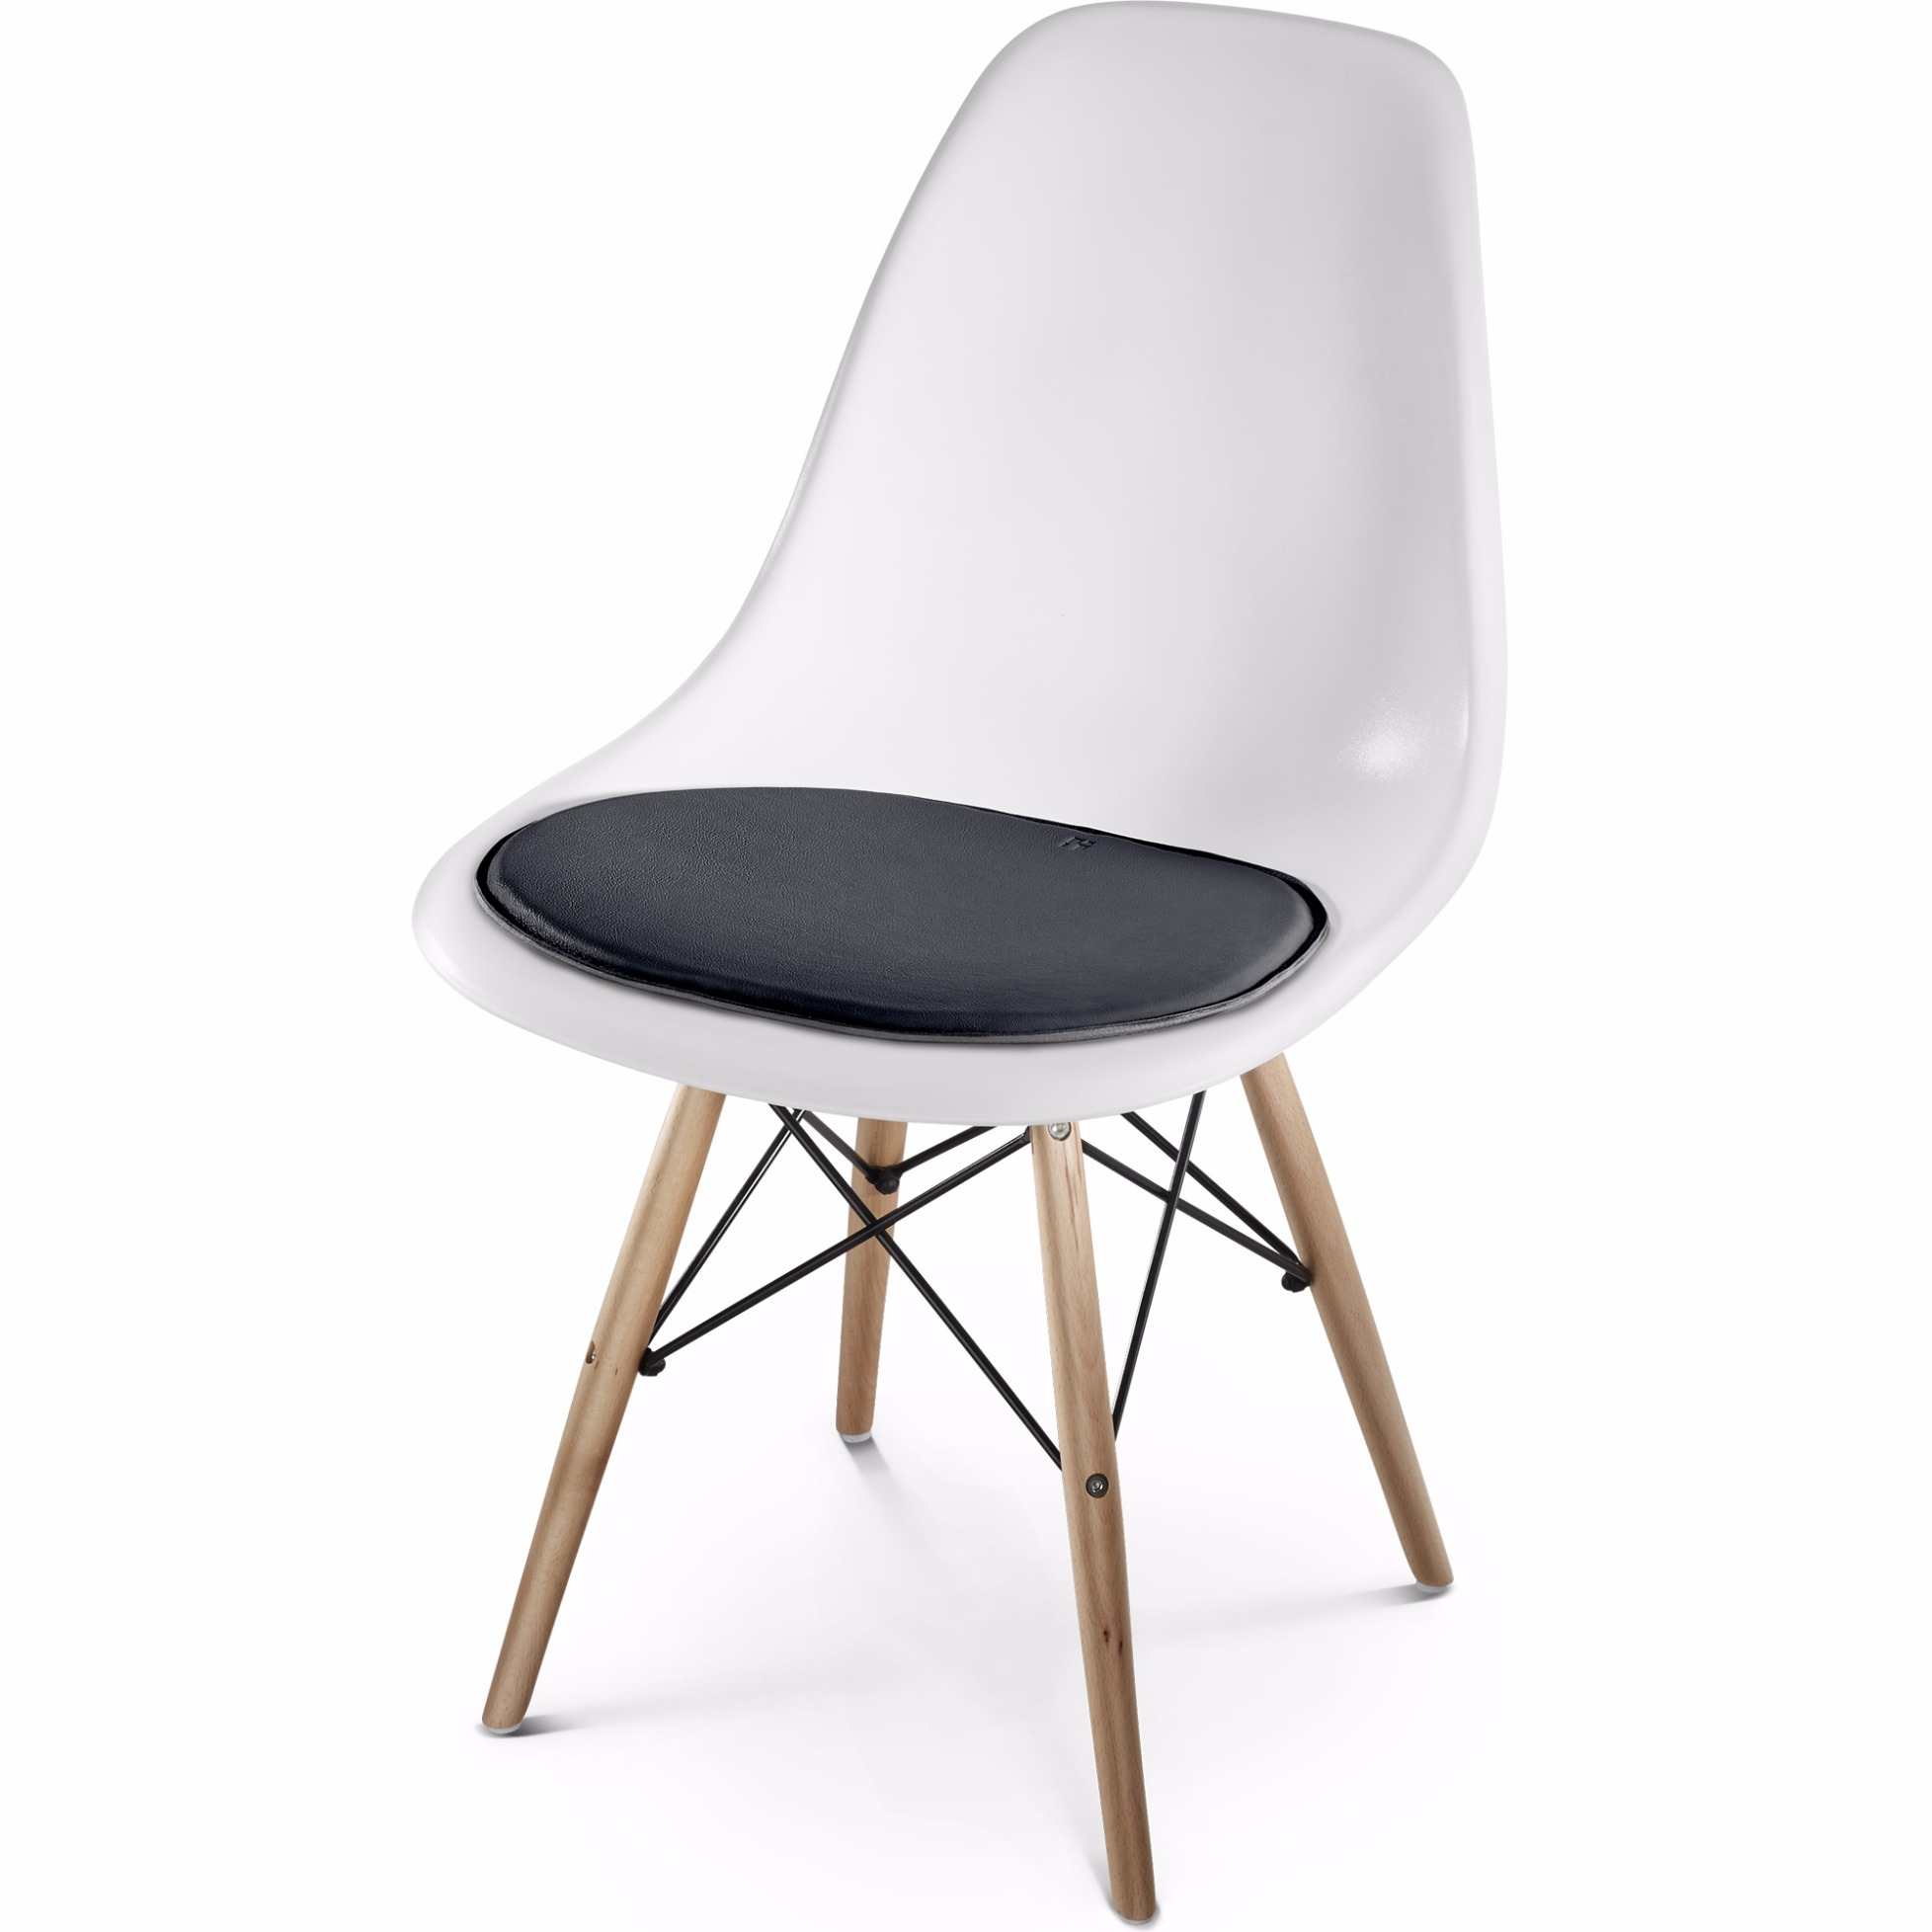 leder sitzkissen f r eames side chair von hillmann living. Black Bedroom Furniture Sets. Home Design Ideas